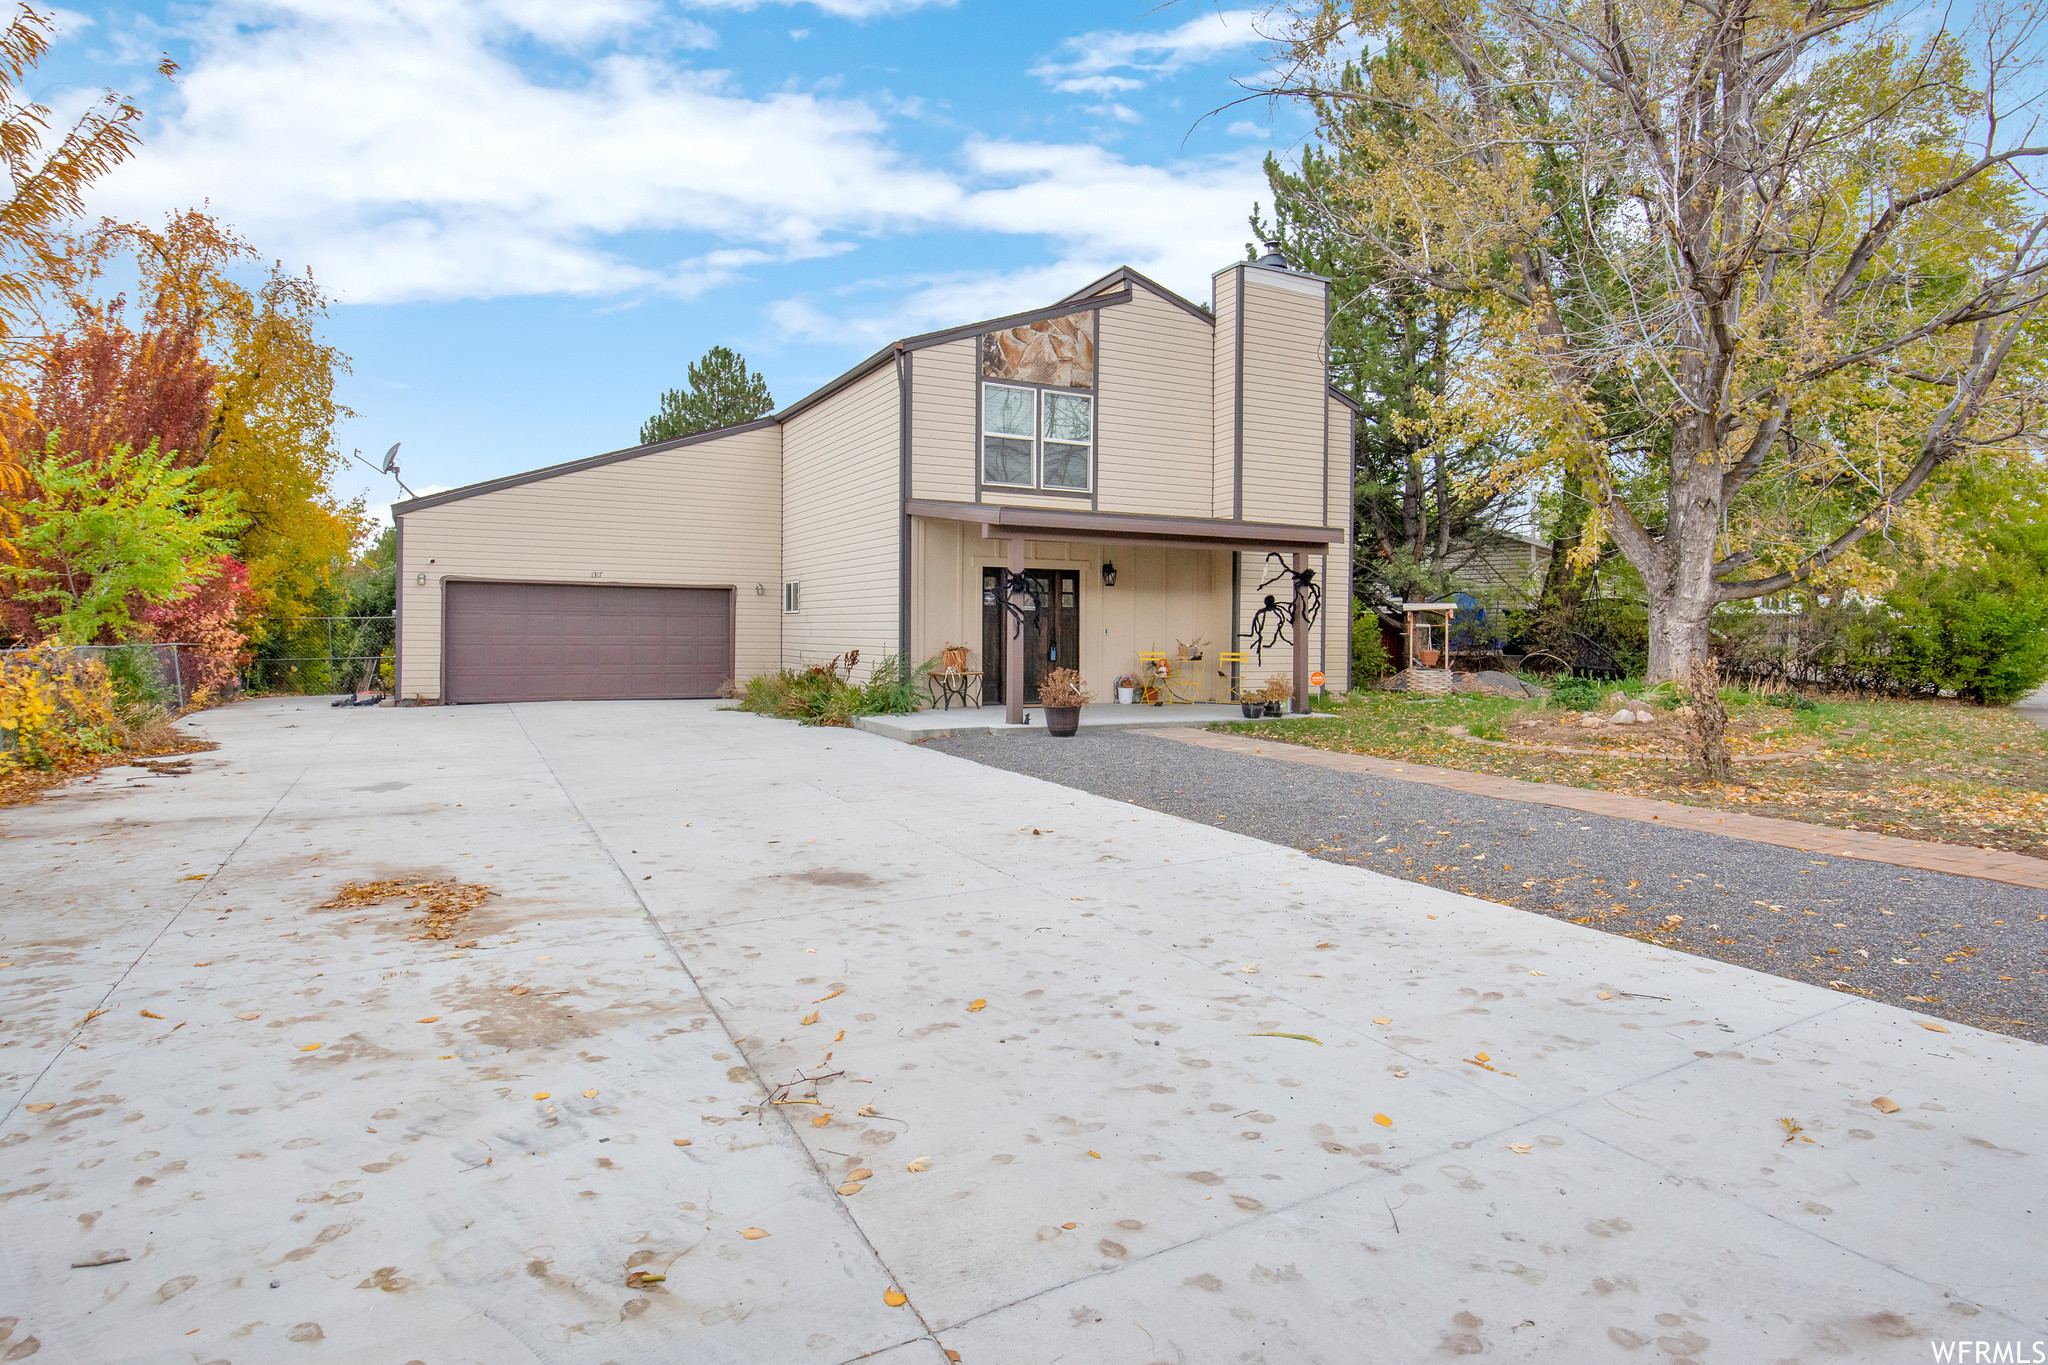 2-Story House In Nalder Heights